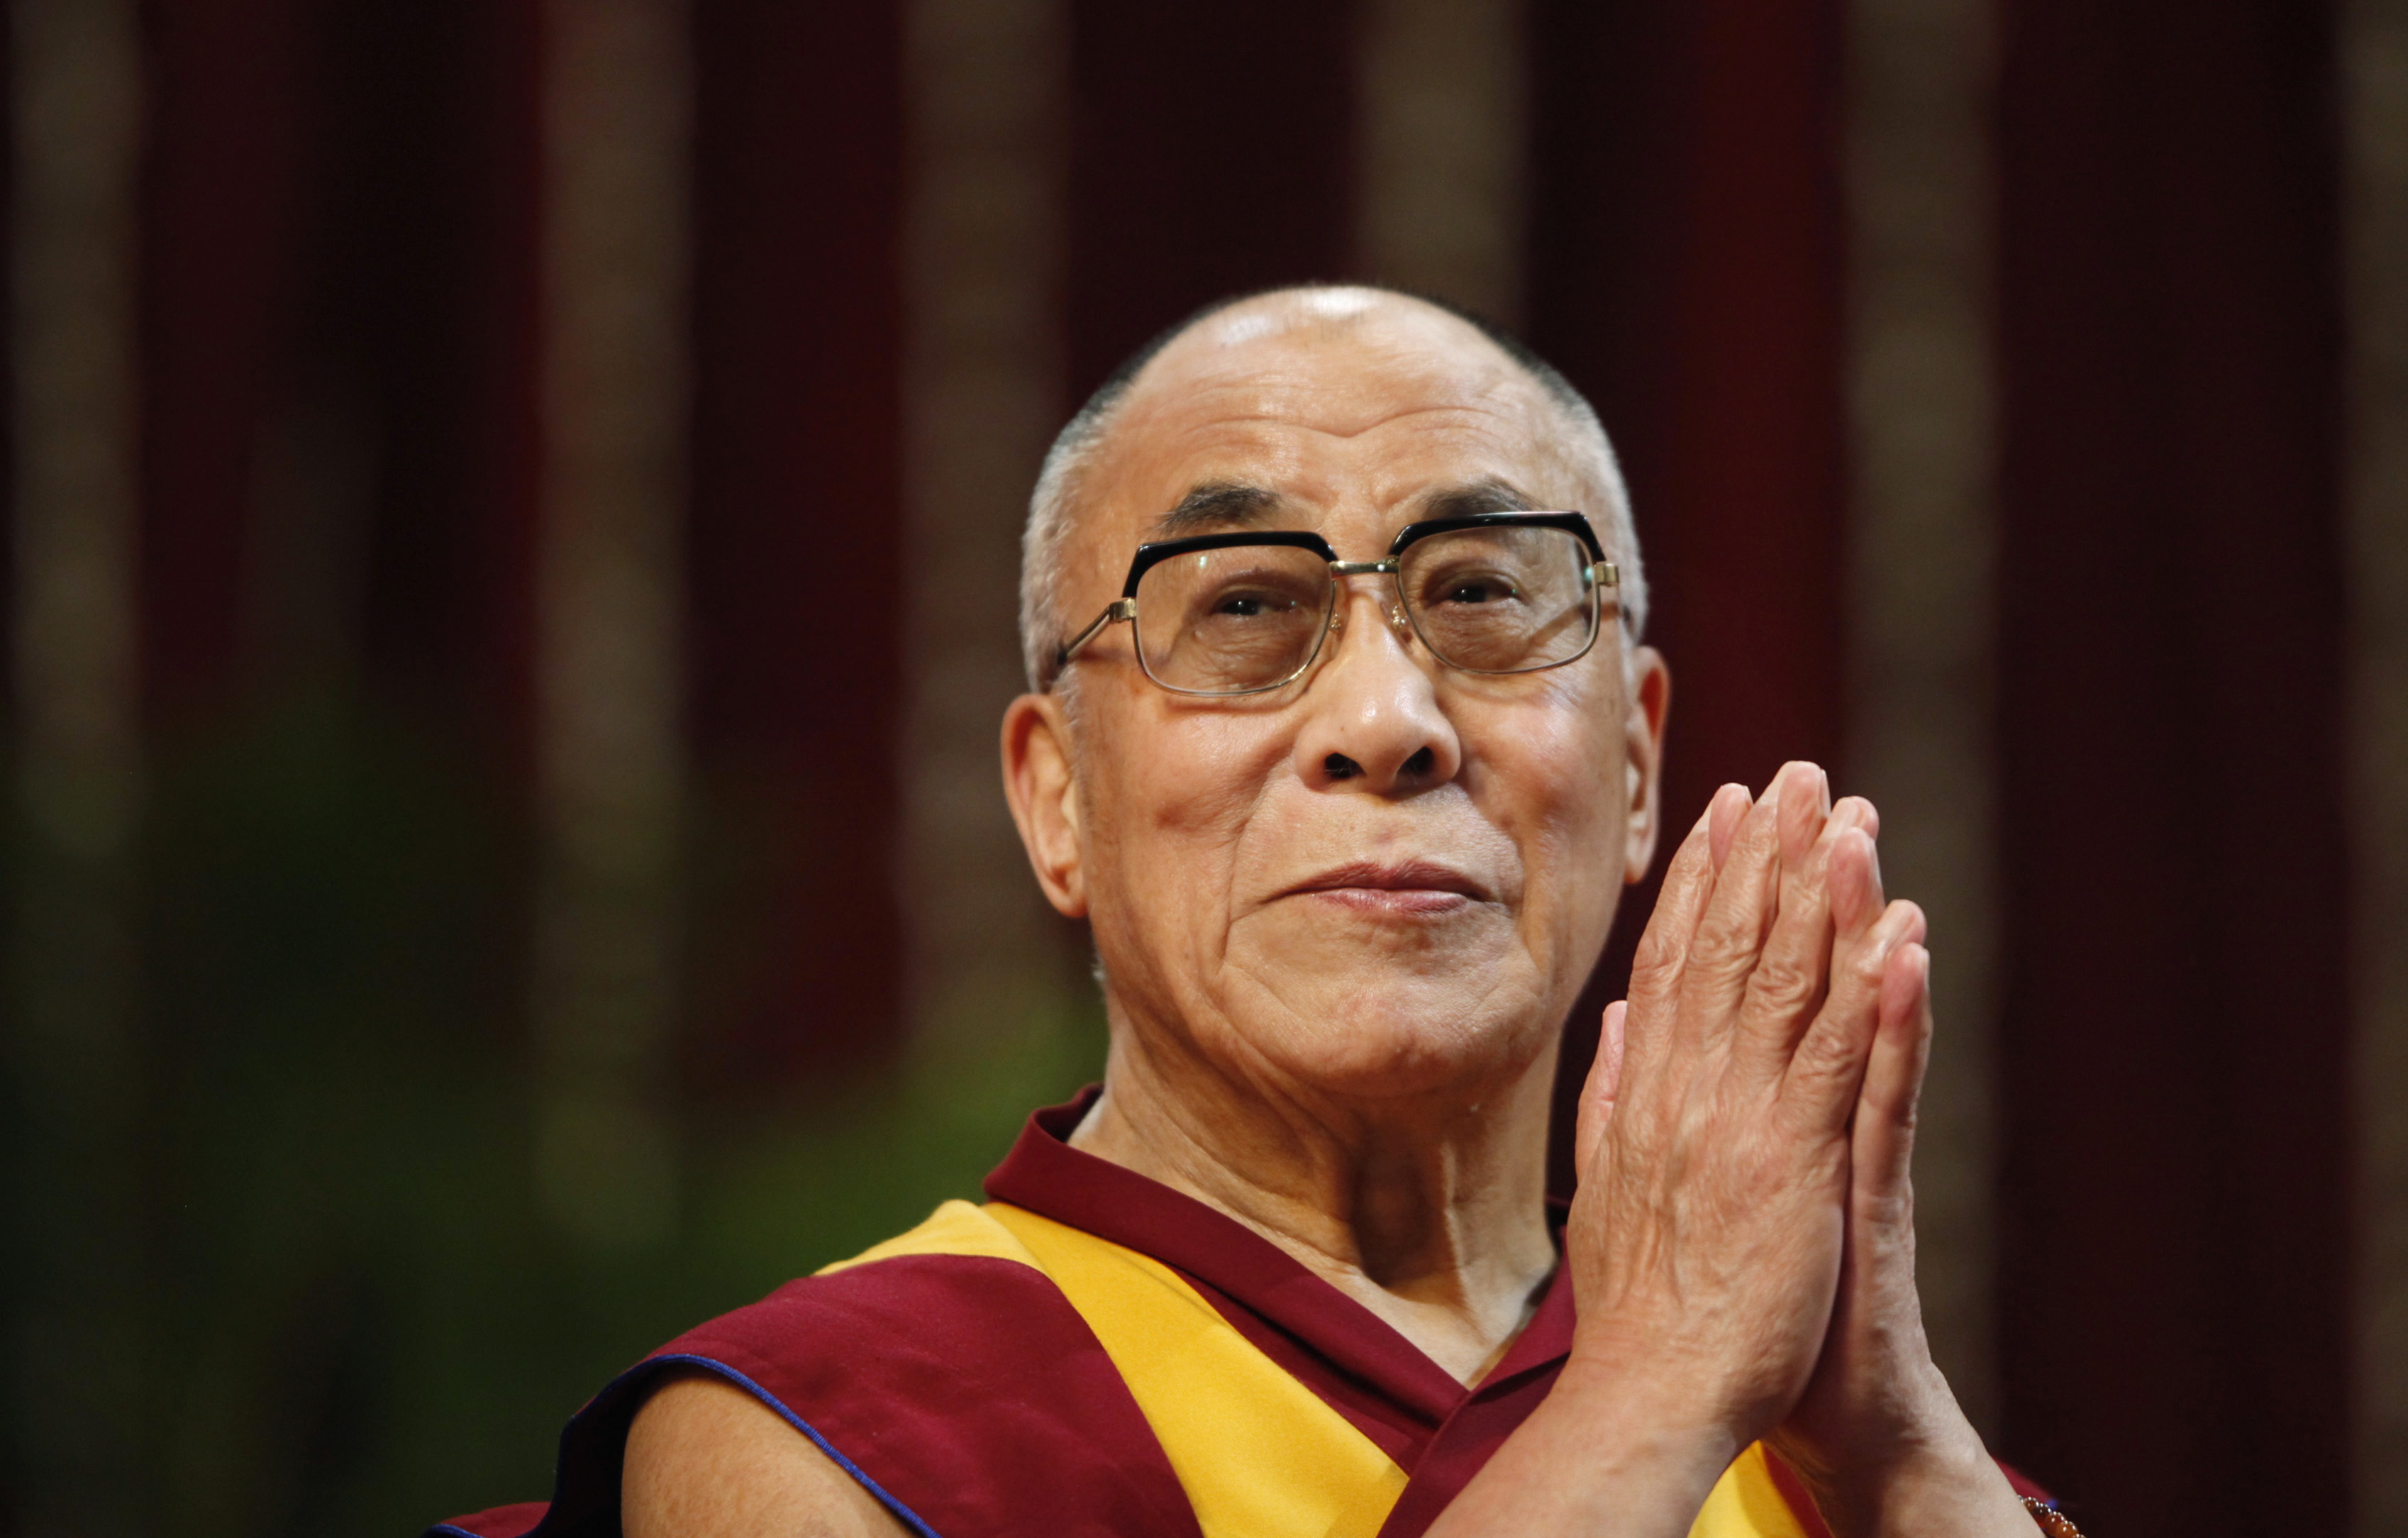 How is the Dalai Lama elected?